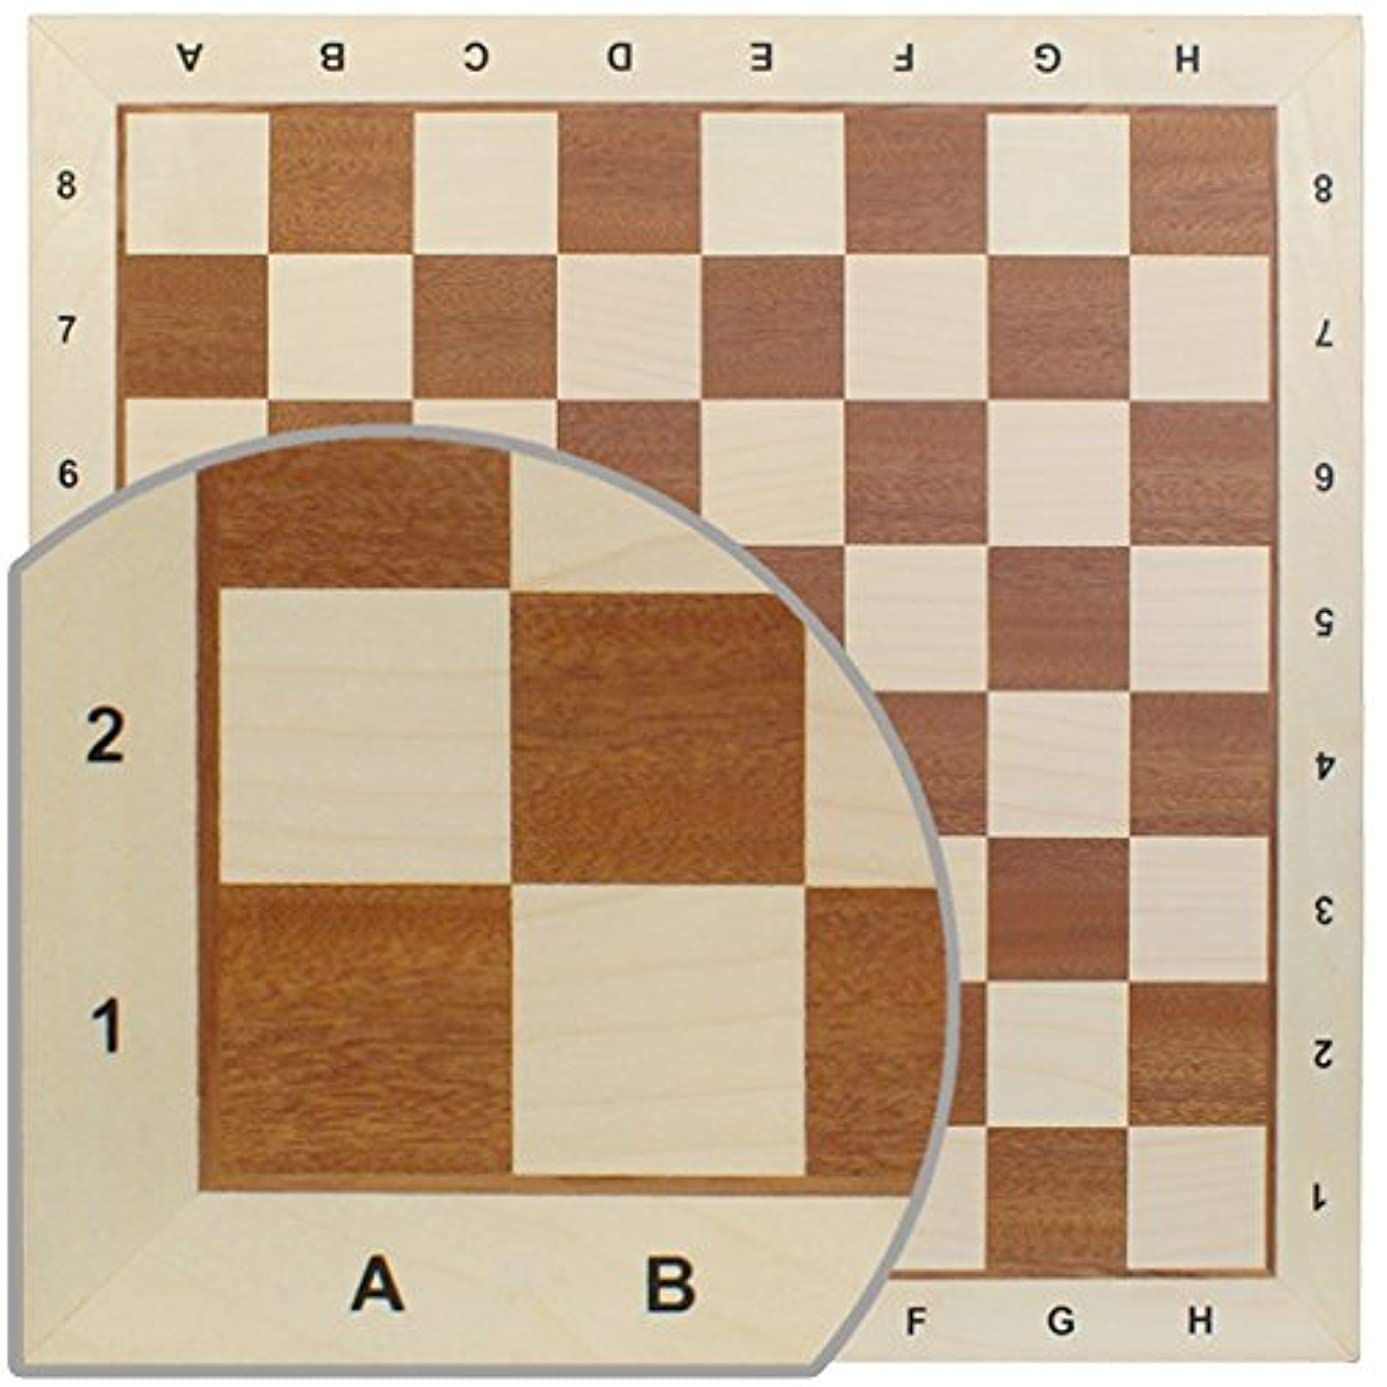 Chess Board No. 6 - Exact Detail and Lettering for Professional Tournament Use - Mahogany and Sycamore Wood [並行輸入品]